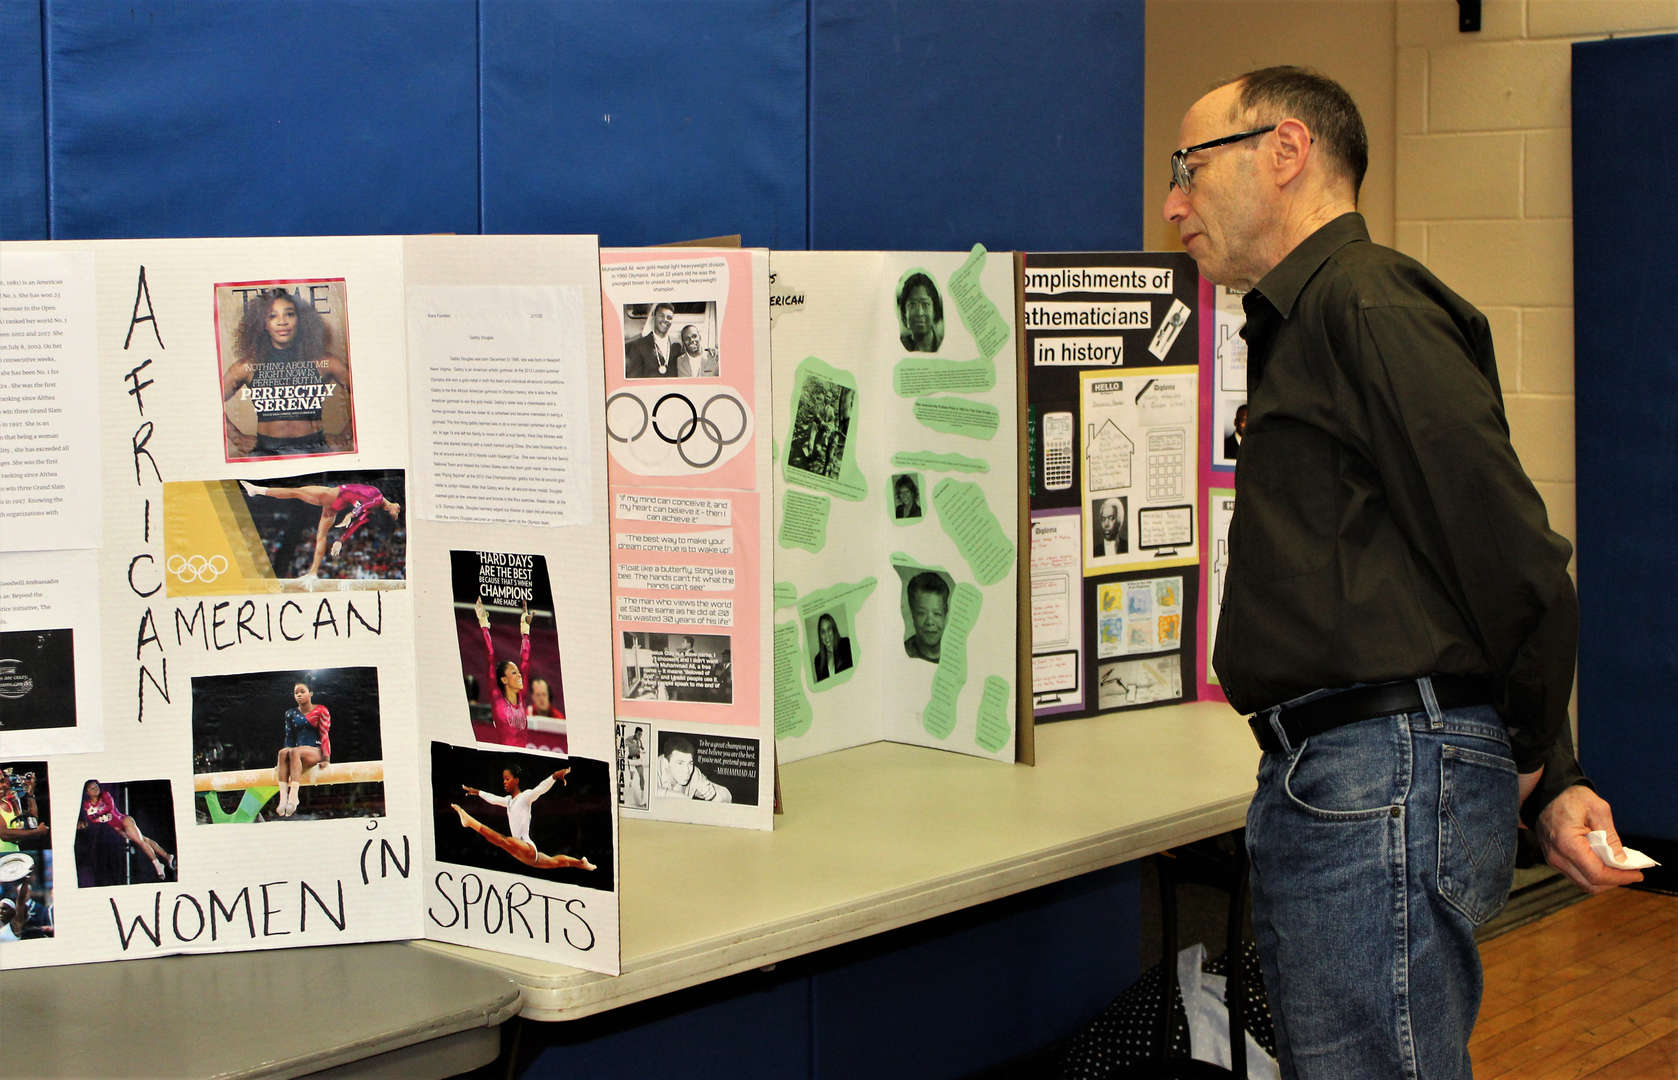 A male teacher looks at projects created on poster board.